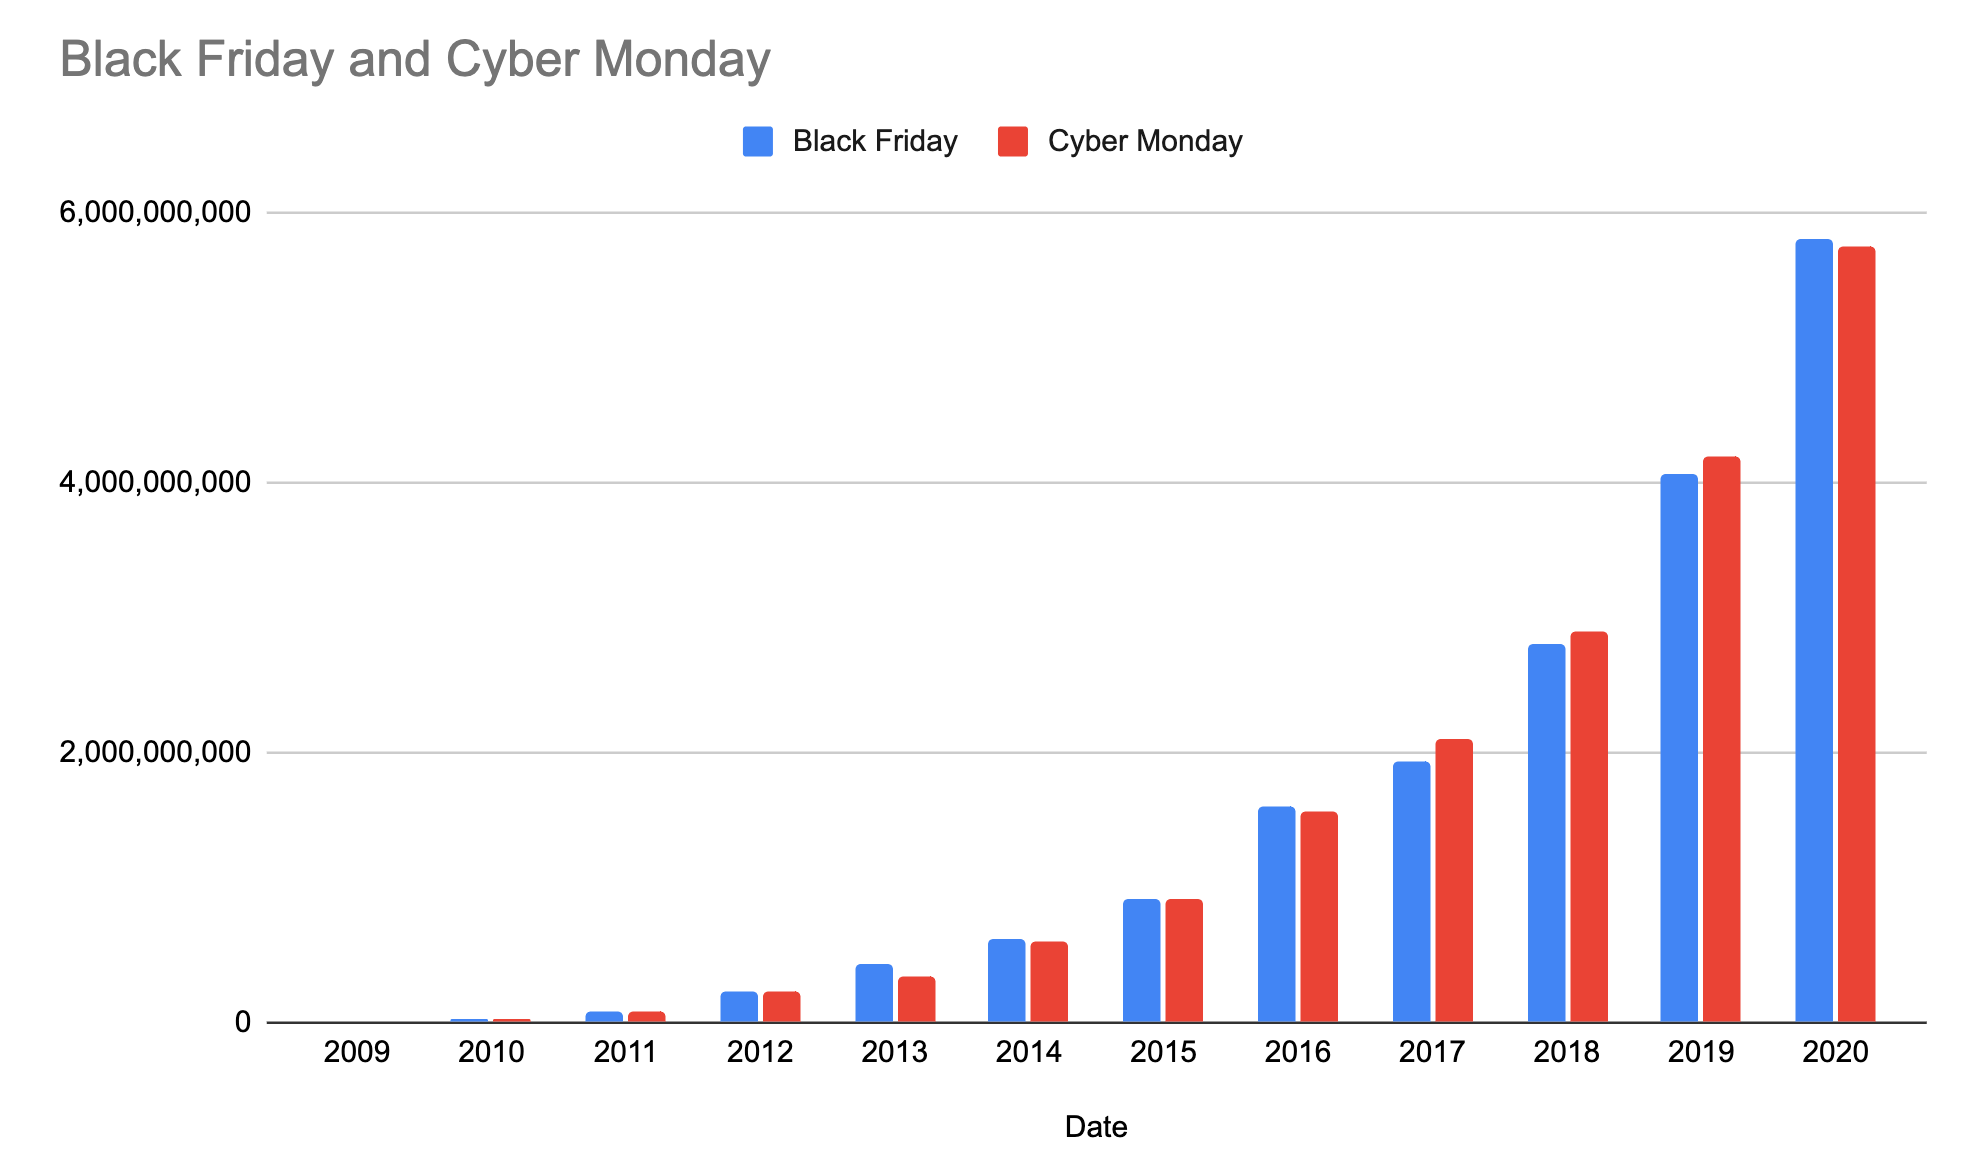 Black Friday and Cyber Monday Volume